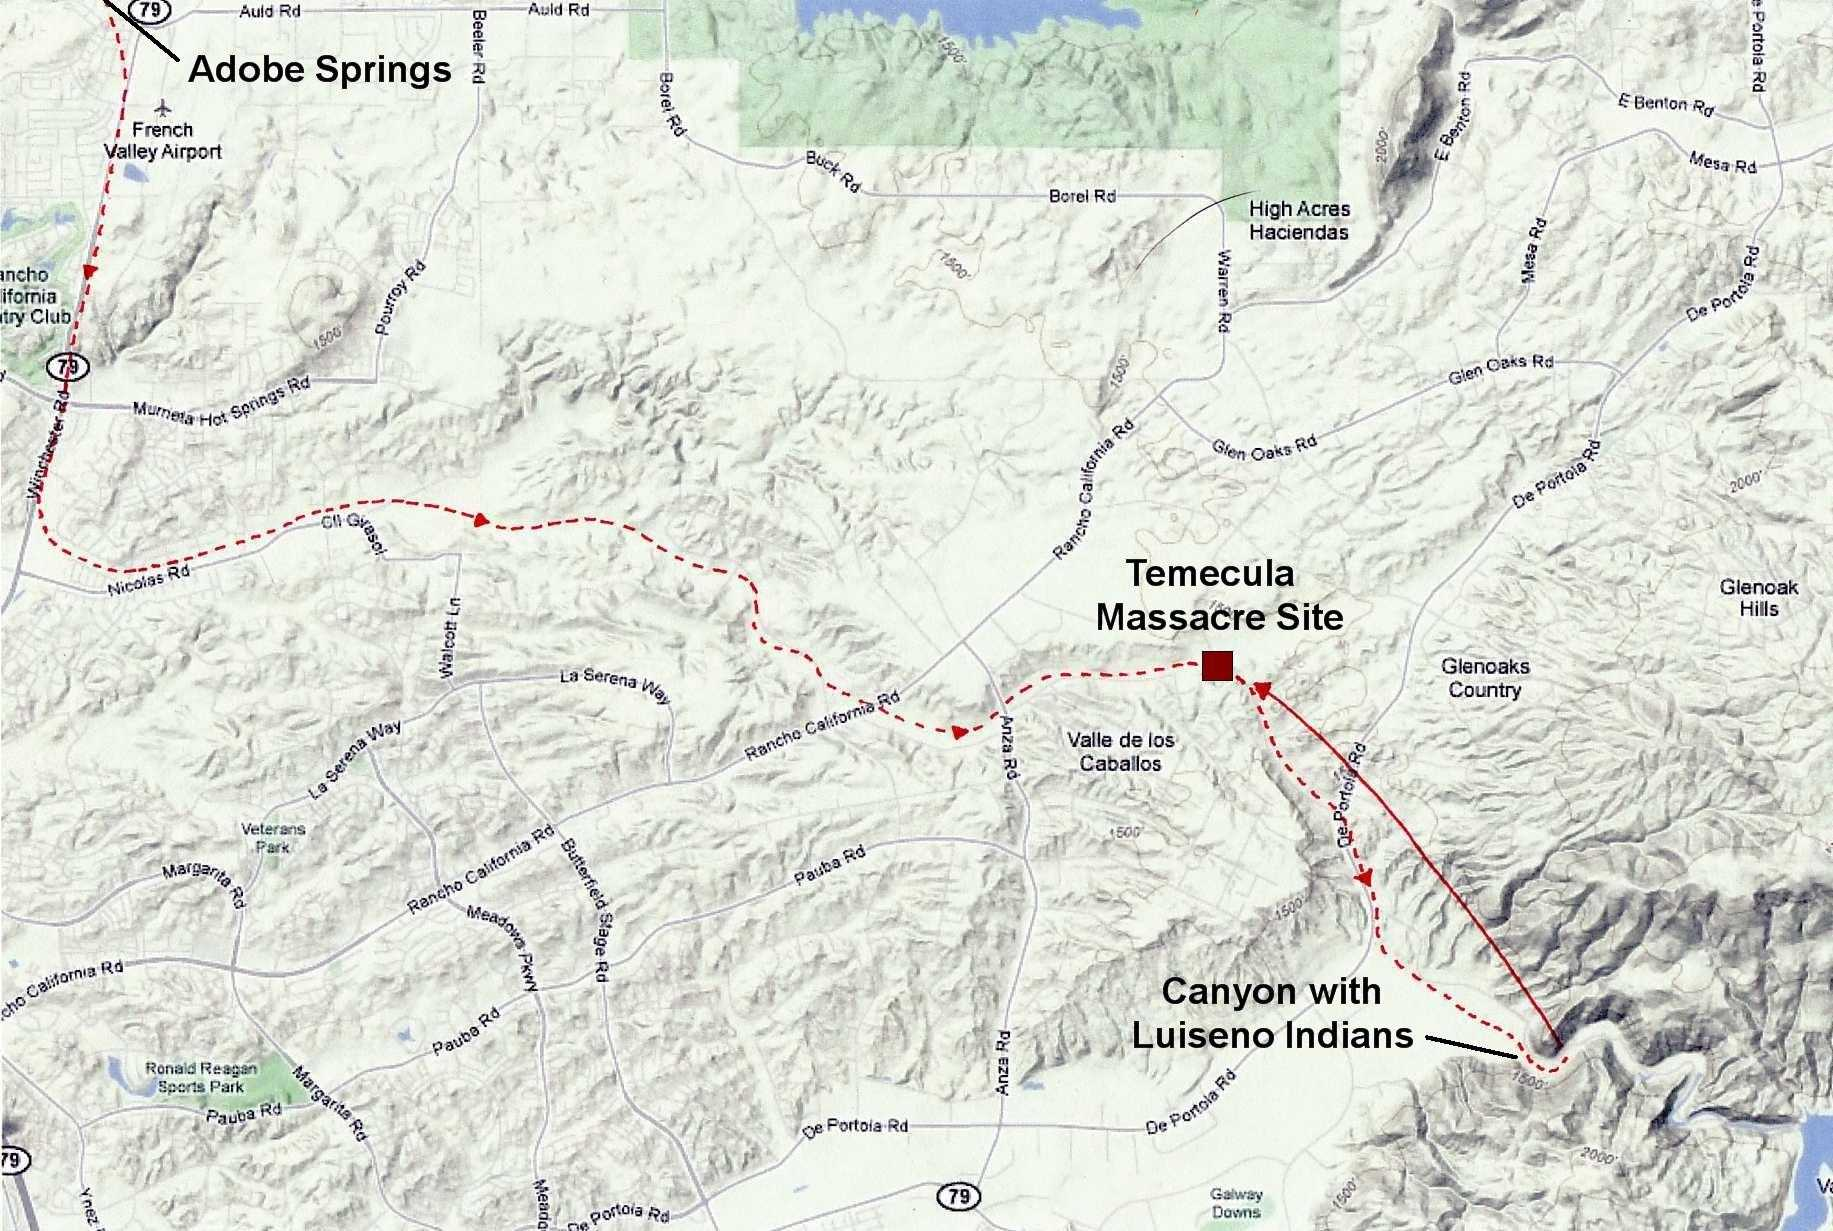 Map showing route of Californio/Cahuilla forces to massacre site. Locations of massacre and burial site are marked.